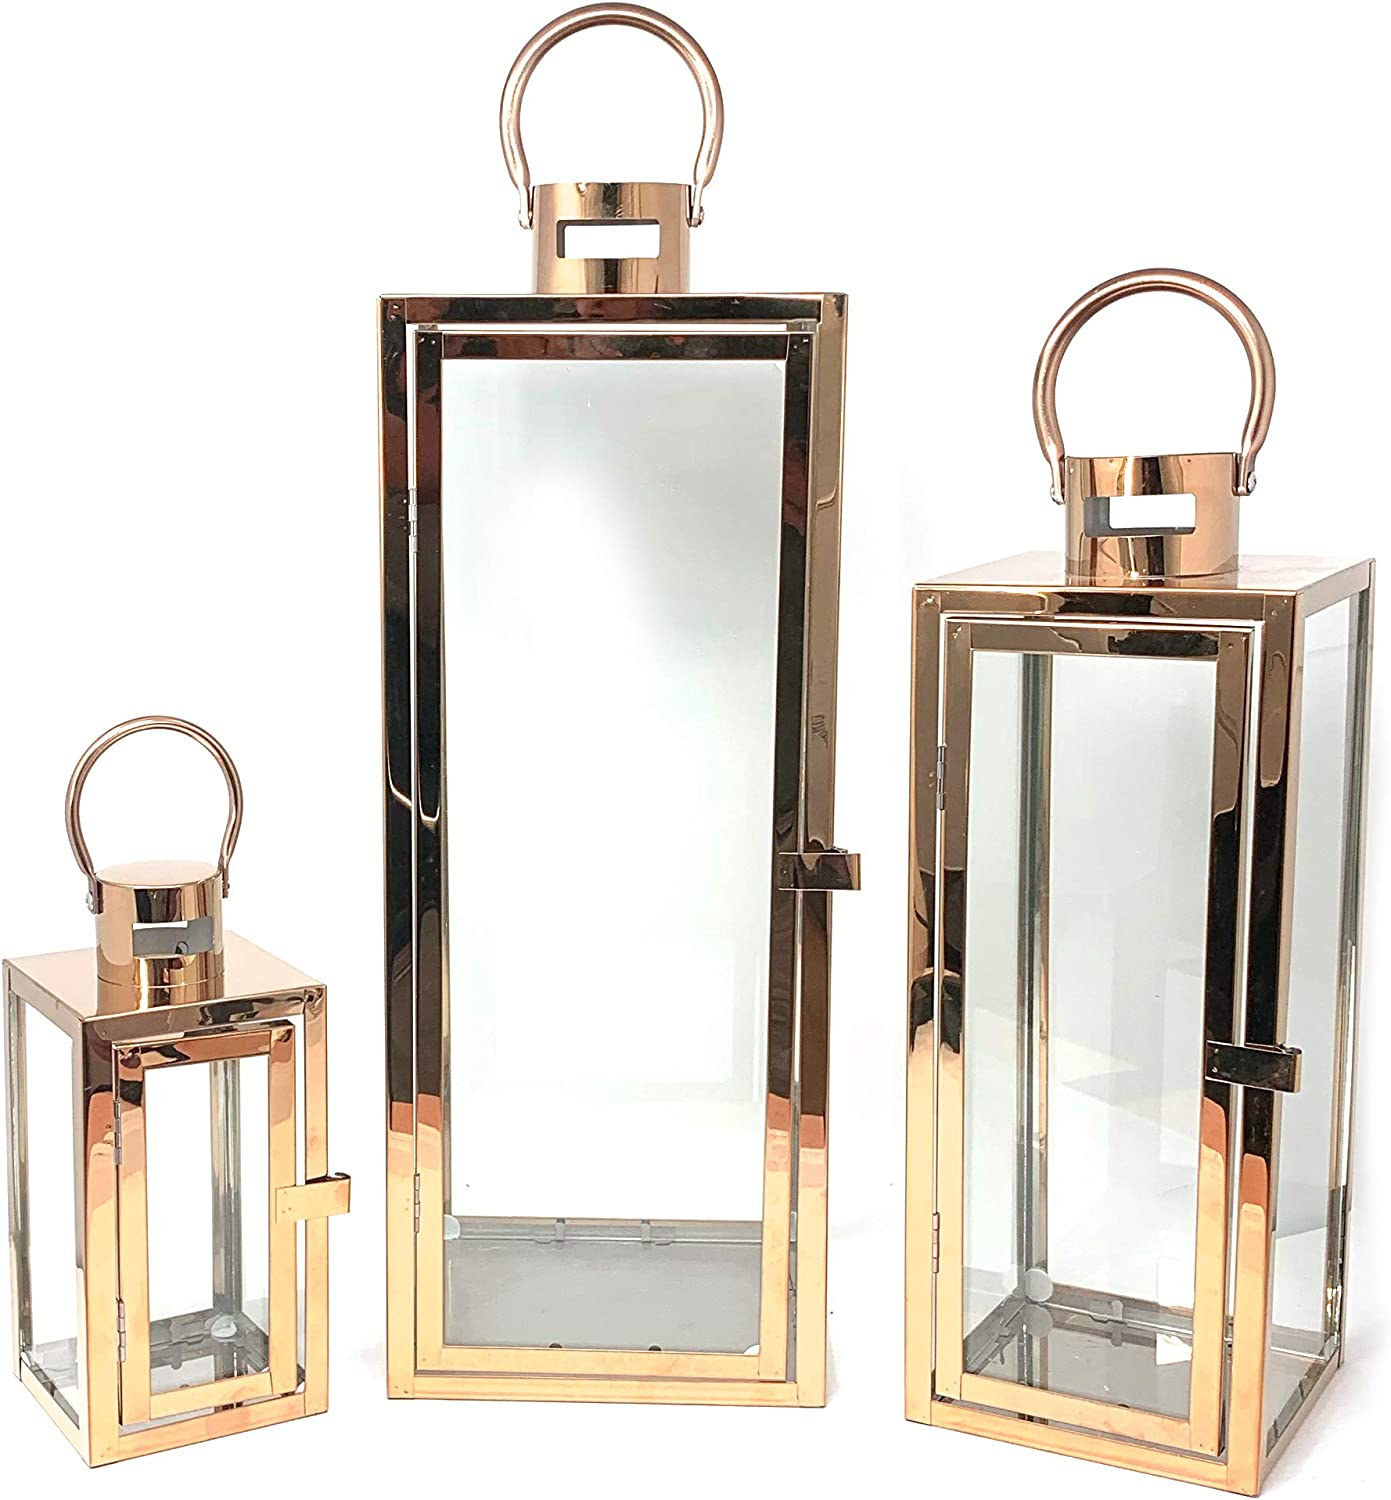 allgala 3-PC Set Jumbo Luxury Modern Indoor/Outdoor Hurricane Candle Lantern Set with Chrome Plated Structure and Tempered Glass-Cuboid Rose Gold-HD88014